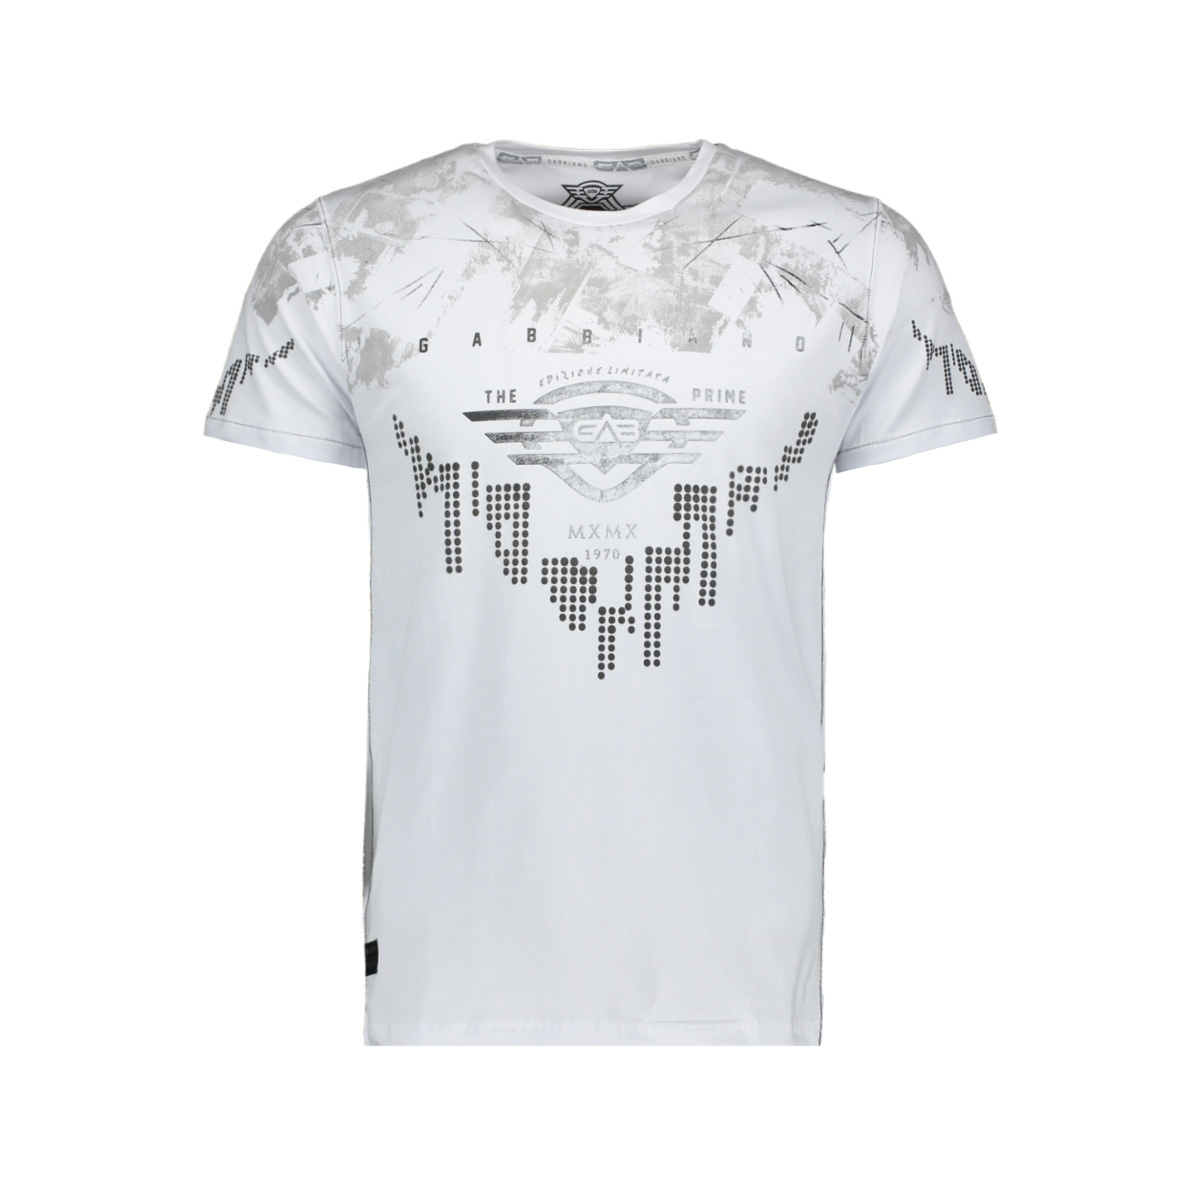 t shirt 13881 gabbiano t-shirt white